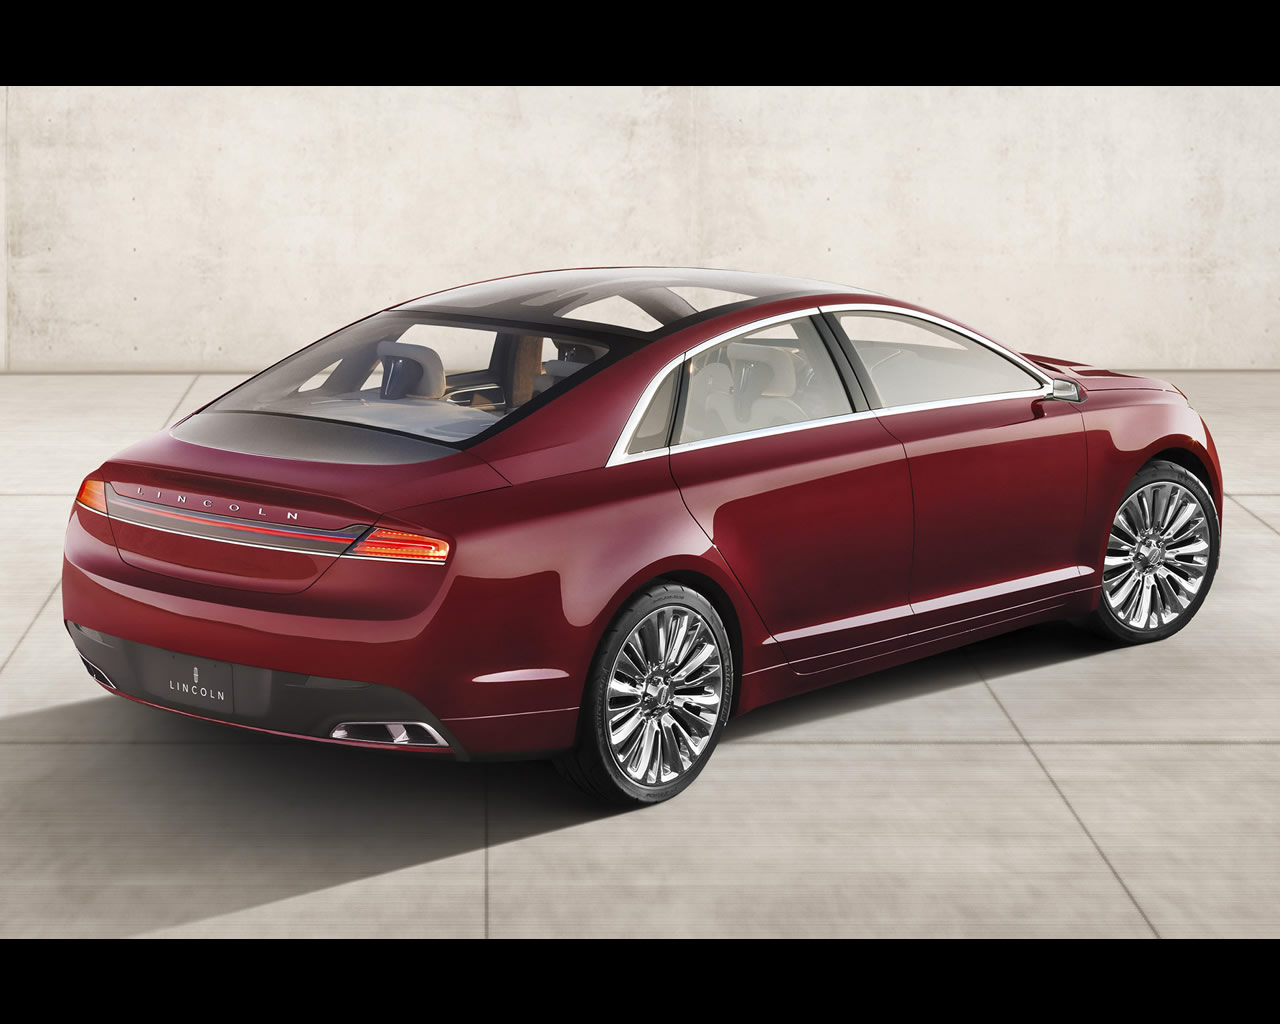 Ford Lincoln Mkz Concept